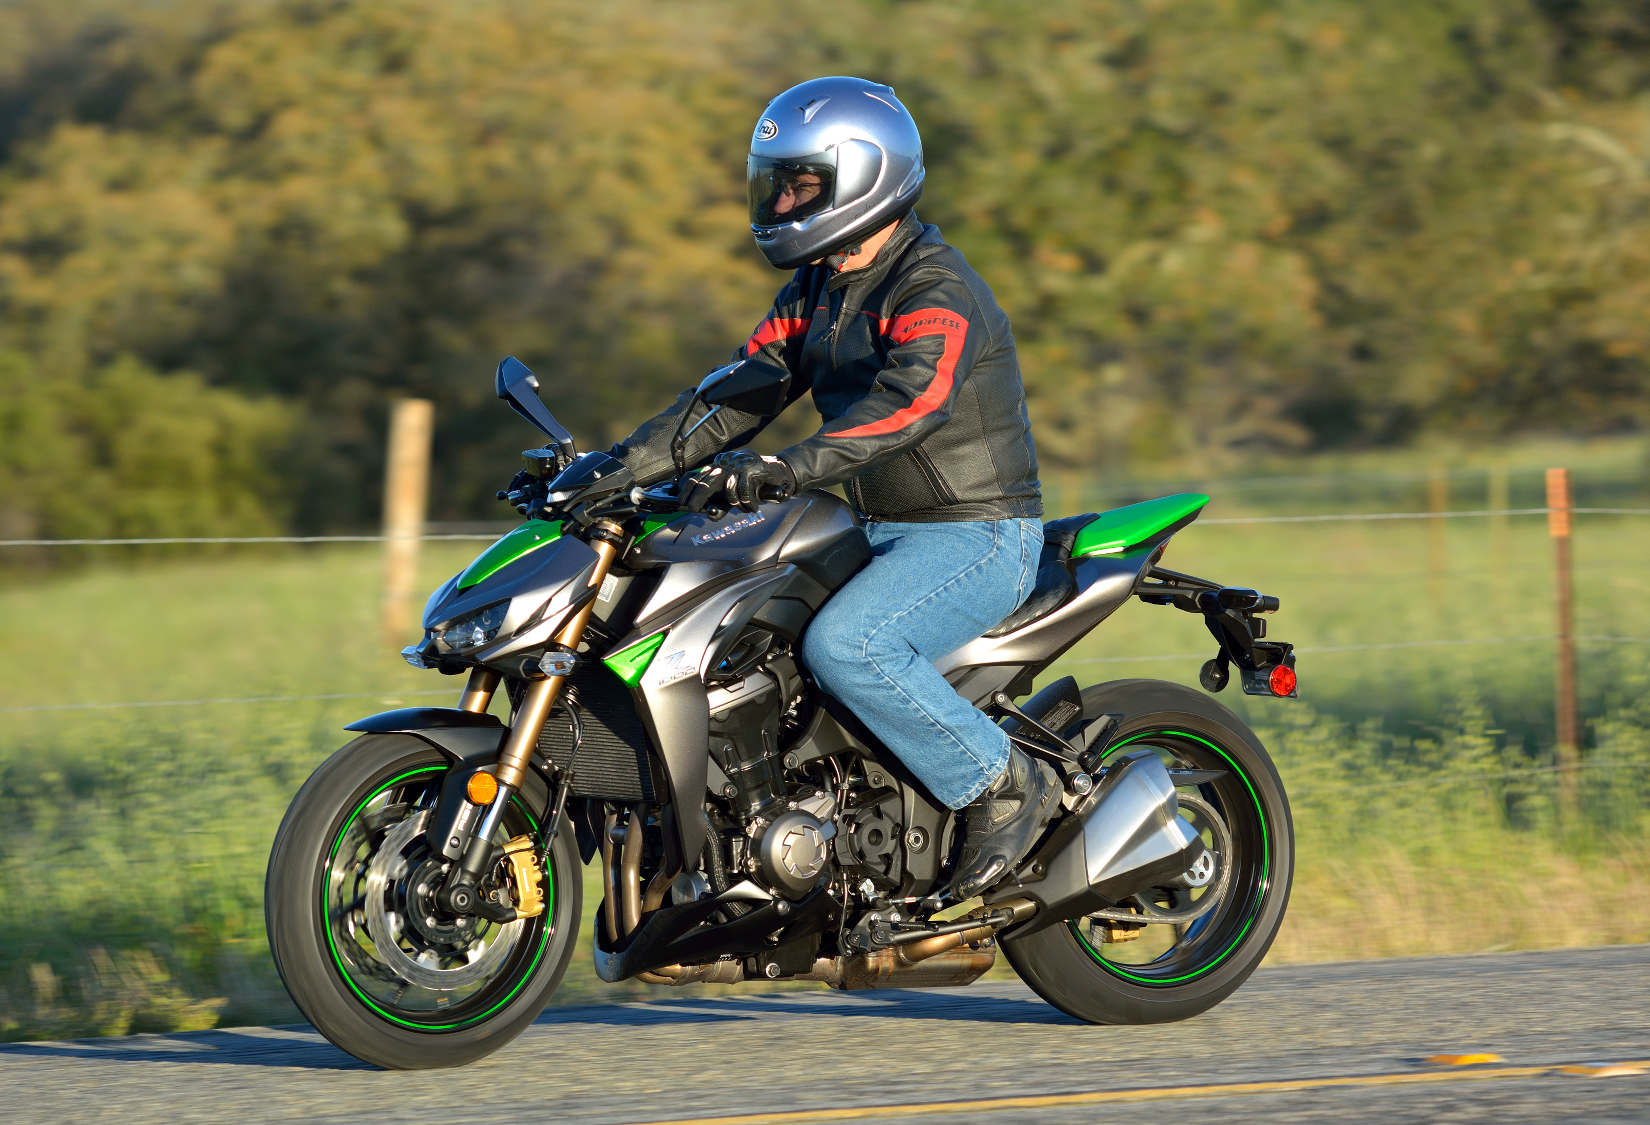 Kawasaki z1000, deviantART and Google on Pinterest